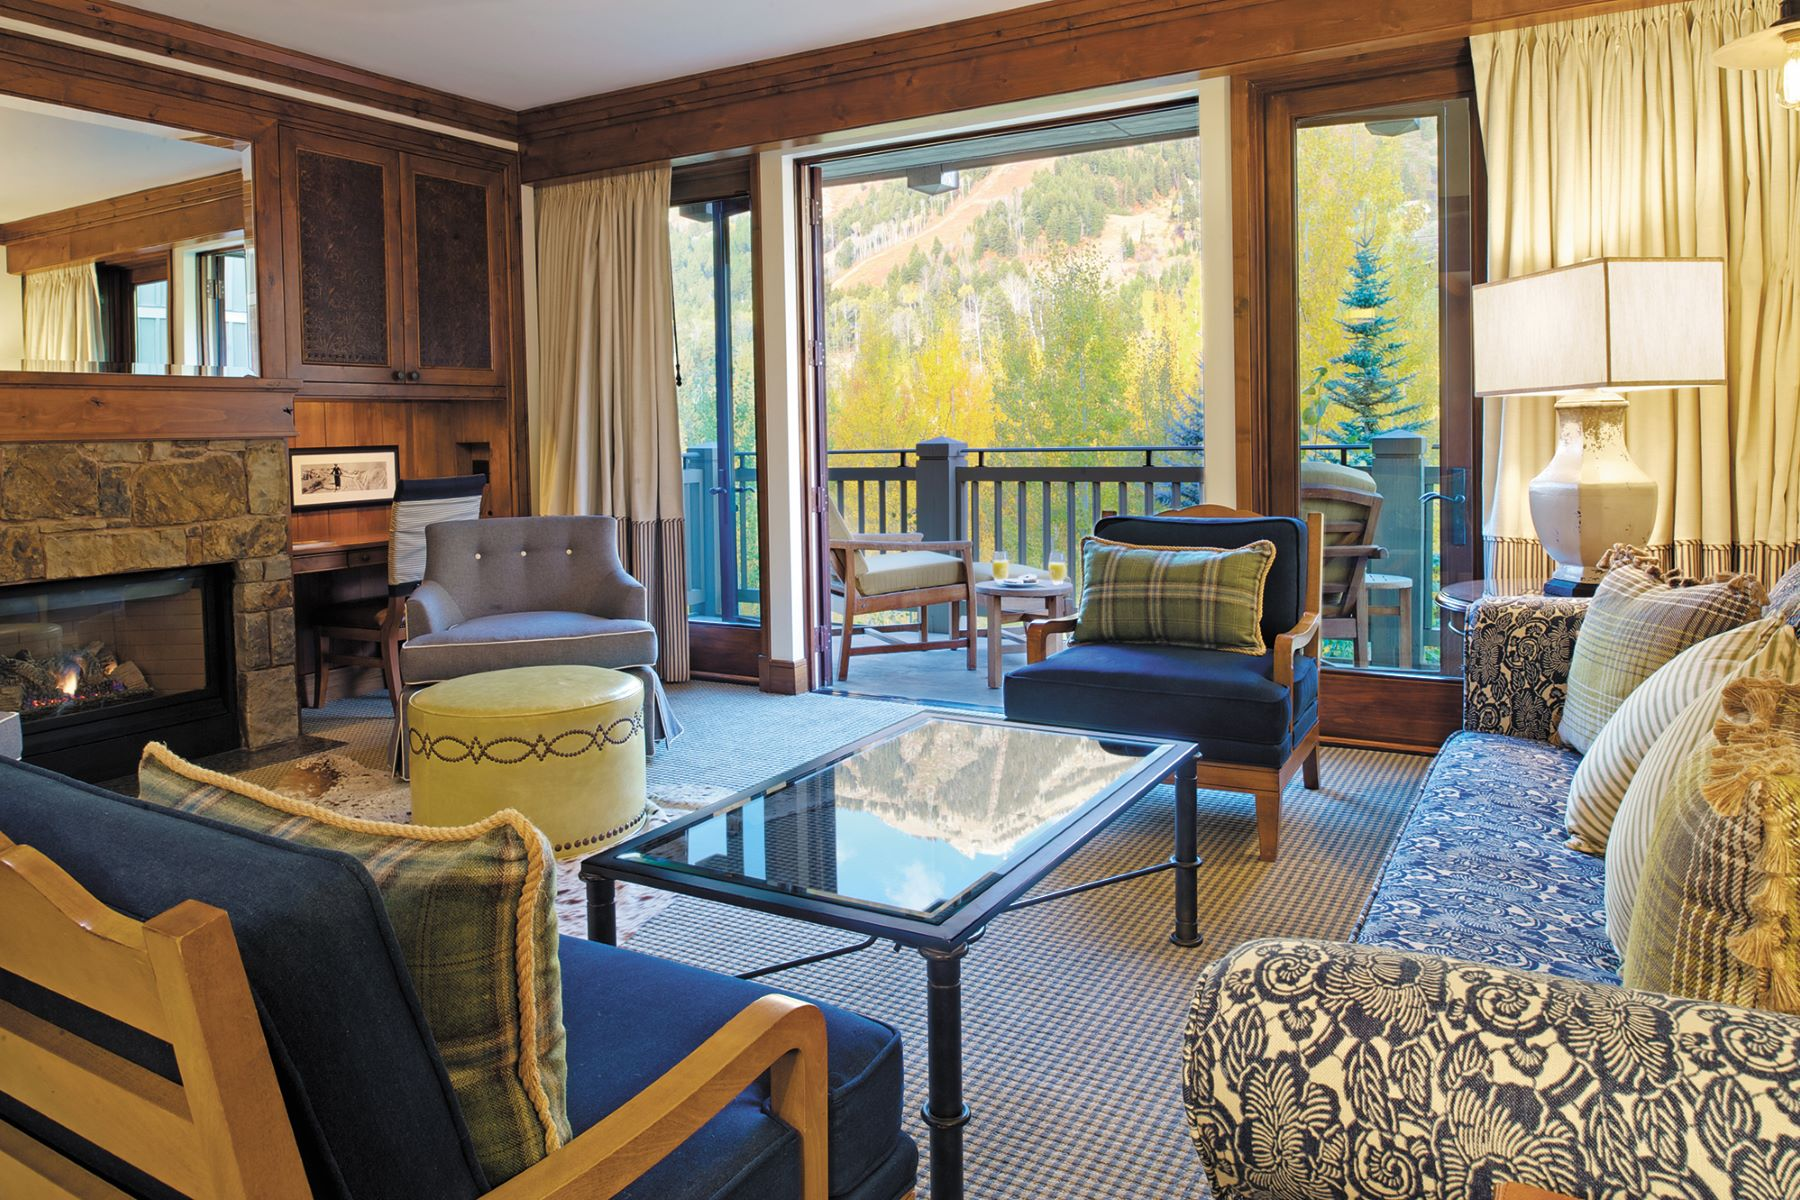 Eigentumswohnung für Verkauf beim 3 Bedroom Four Seasons Residence Club 7680 Granite Loop Road, Unit 554 Four Seasons (WY) Teton Village, Wyoming, 83025 Jackson Hole, Vereinigte Staaten